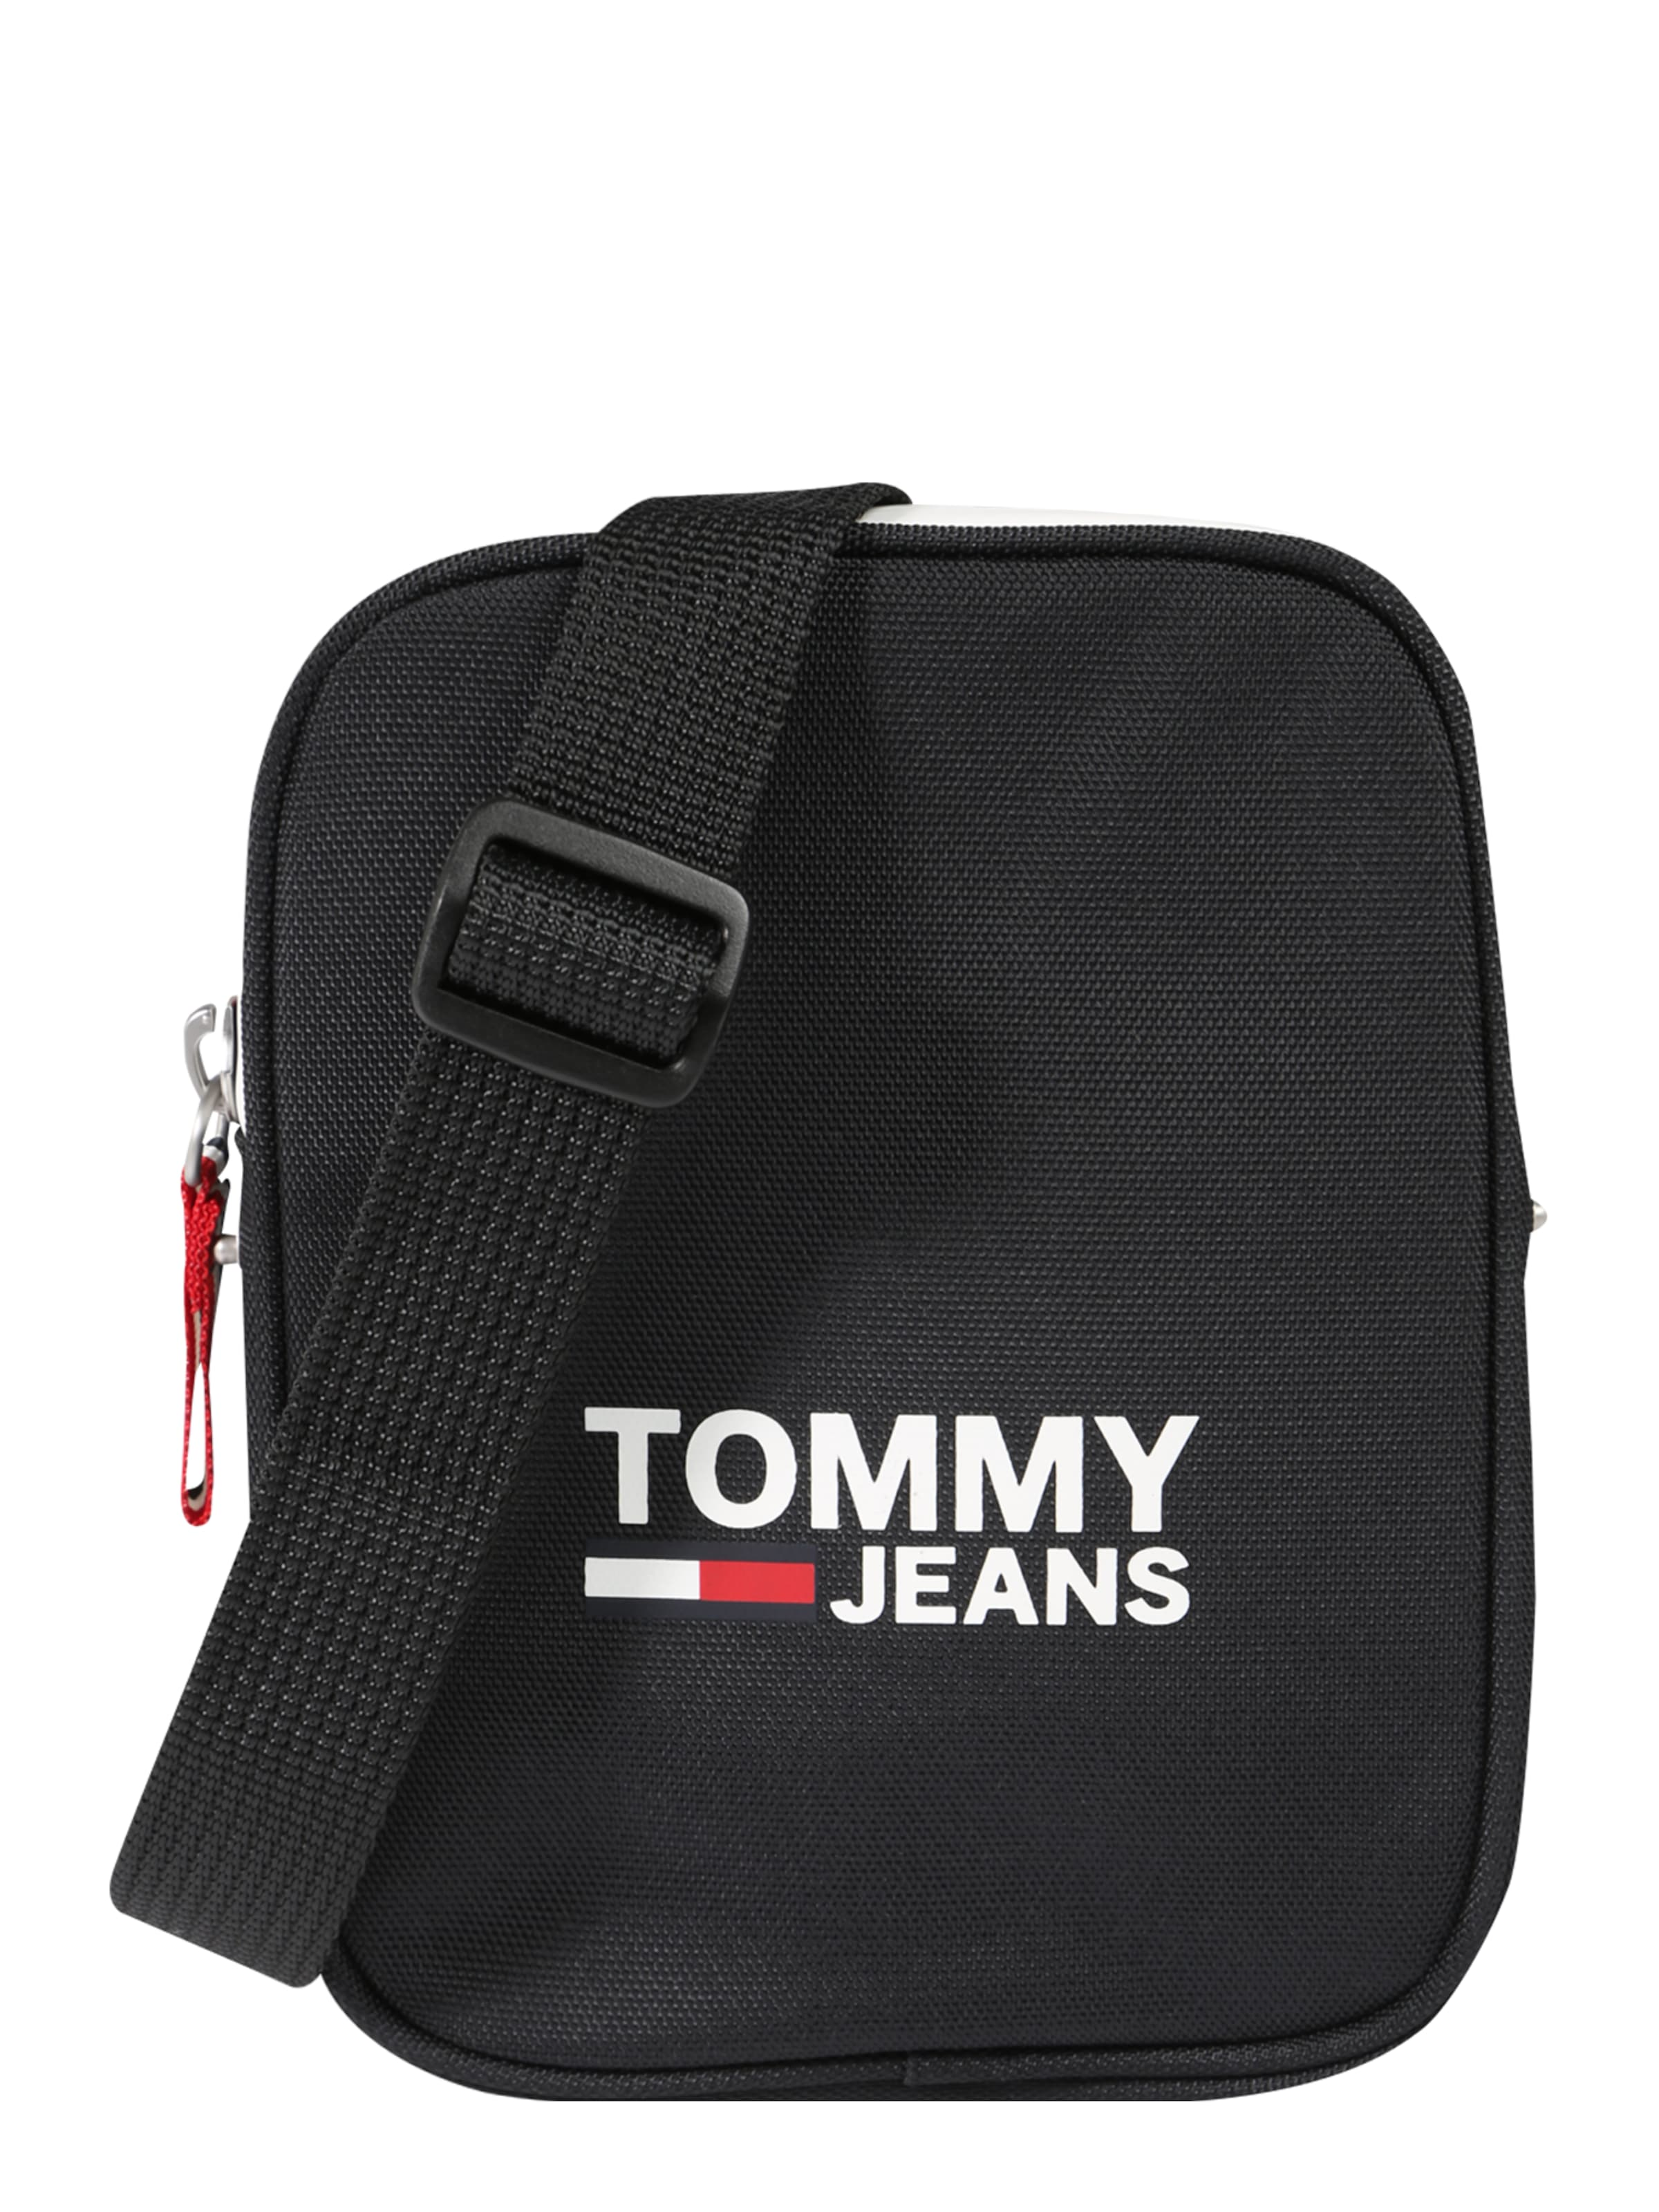 Tommy Jeans 'cool Schwarz Tasche Compact' In City Ovm0N8wn